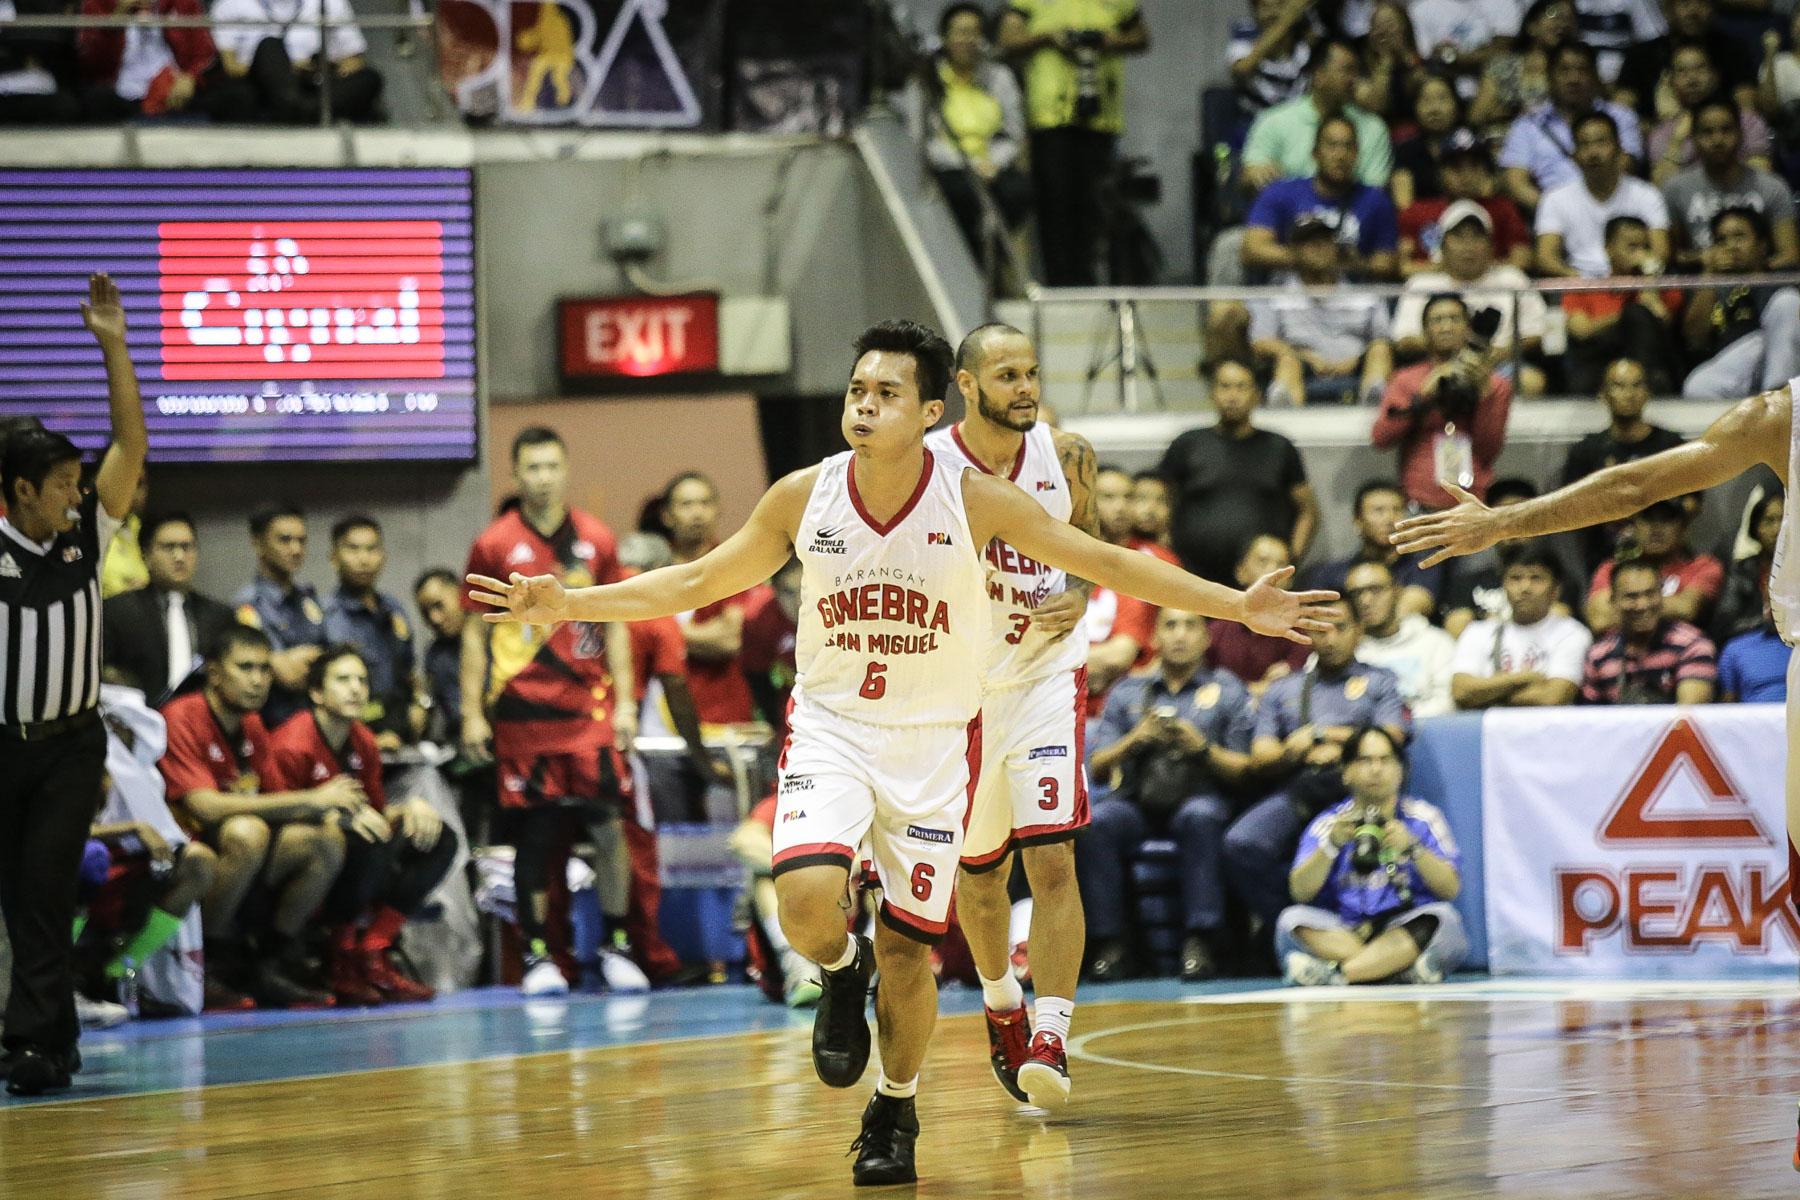 STAR ROOKIE. Scottie Thompson explodes for a career-high 24 points. Photo by Josh Albelda/ Rappler